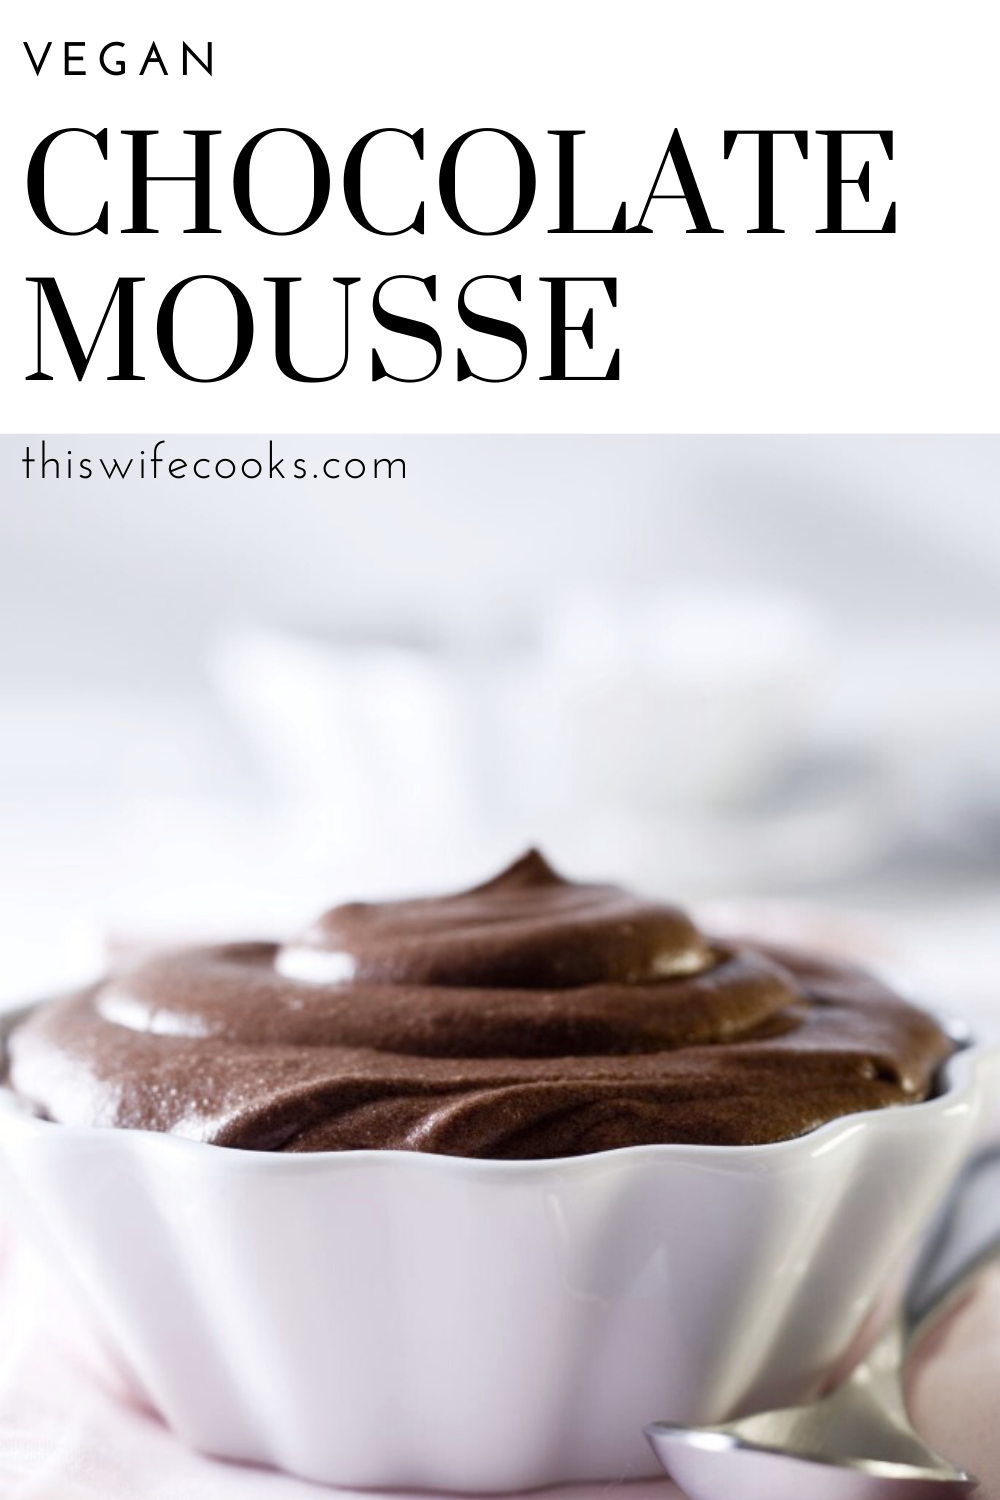 Vegan Chocolate Mousse - Now this is a dessert you can feel good about! Chocolatey, dairy-free deliciousness, ready to serve in an hour or less. via @thiswifecooks